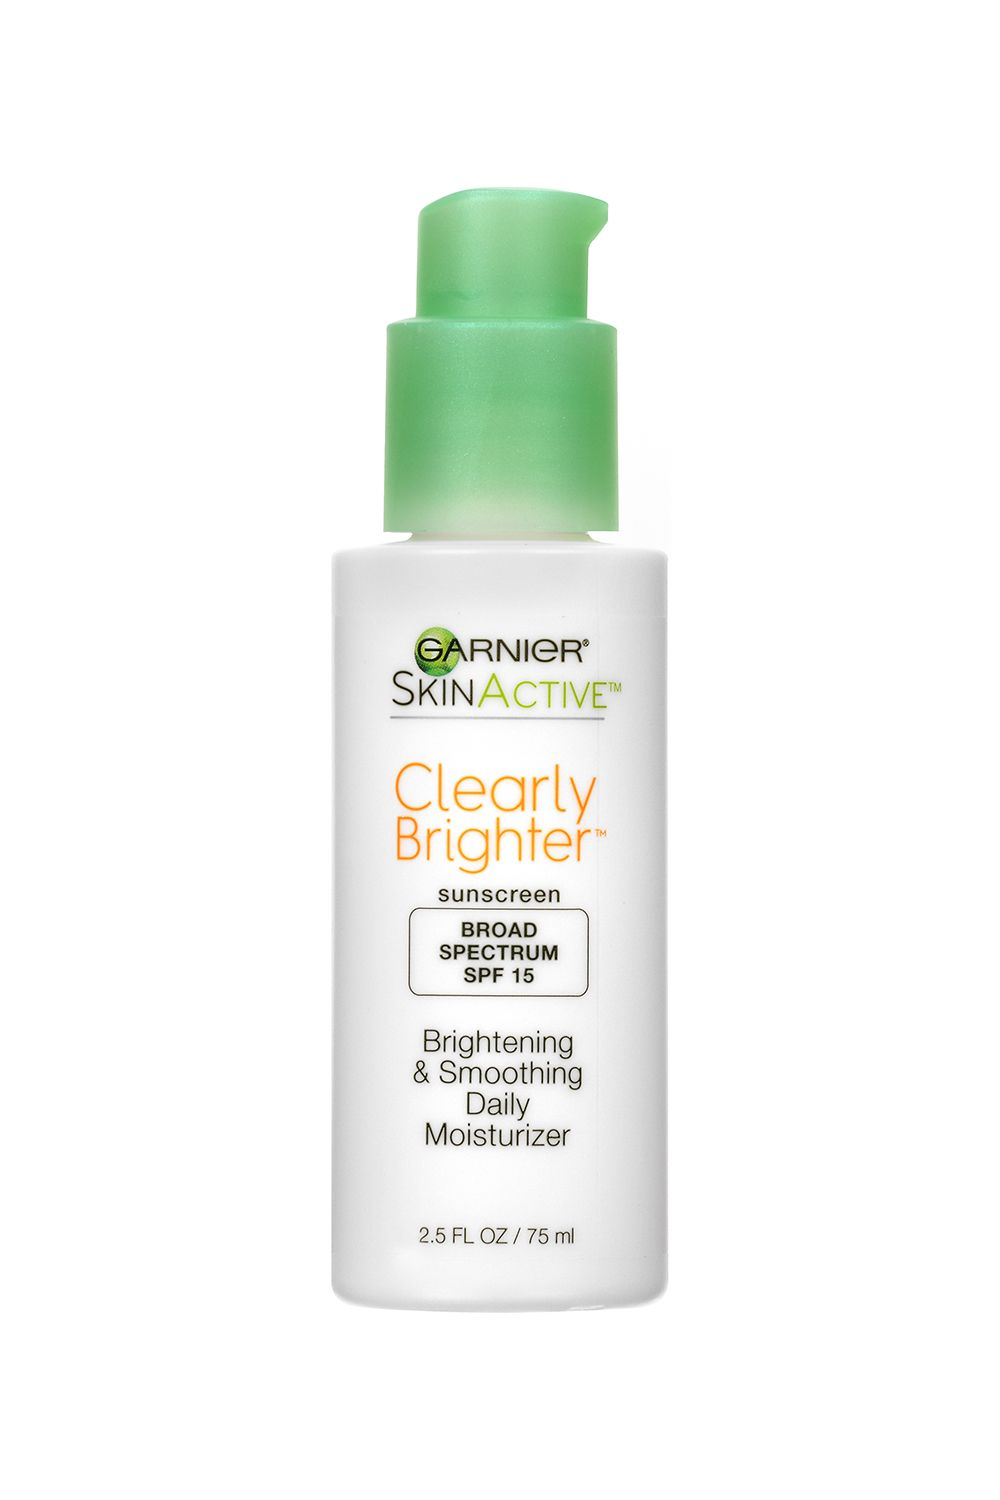 "<p>Another great moisturizer to have in stock if you're treating hyper-pigmentation is Garnier's new formula that uses Vitamin C to brighten skin. It contains gentle exfoliants, too, that make it easy to scrub off dead skin until you're soft as baby. </p><p><strong data-redactor-tag=""strong"" data-verified=""redactor"">$15; <a href=""http://www.ulta.com/skinactive-clearly-brighter-brightening-smoothing-daily-moisturizer-spf-15?productId=xlsImpprod13762437"" target=""_blank"" data-tracking-id=""recirc-text-link"">ulta.com</a>.</strong></p>"